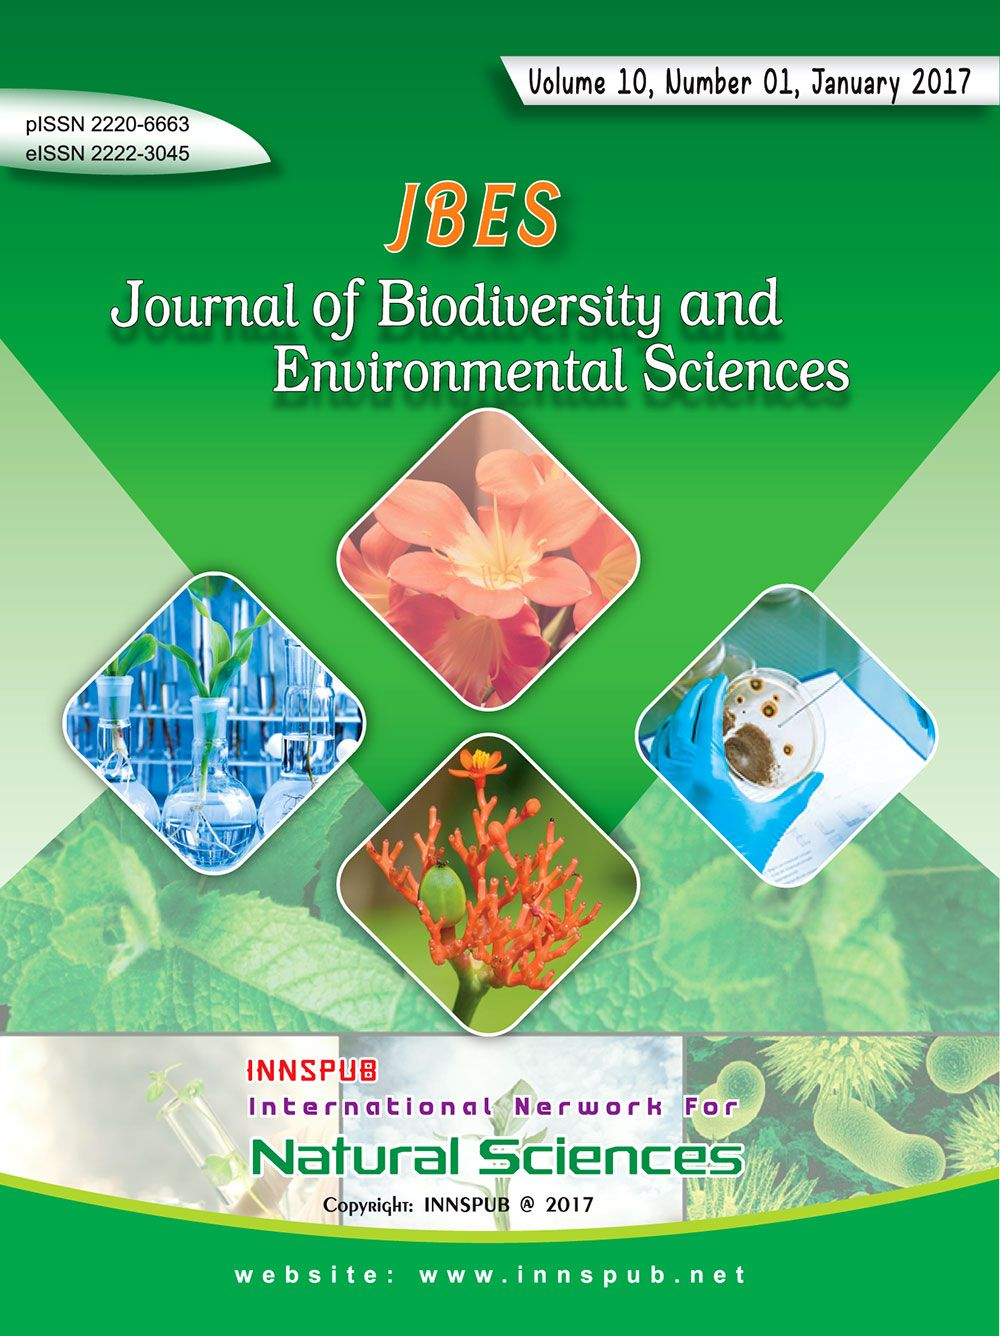 Pin by Innspub Journals on Journal of Biodiversity and